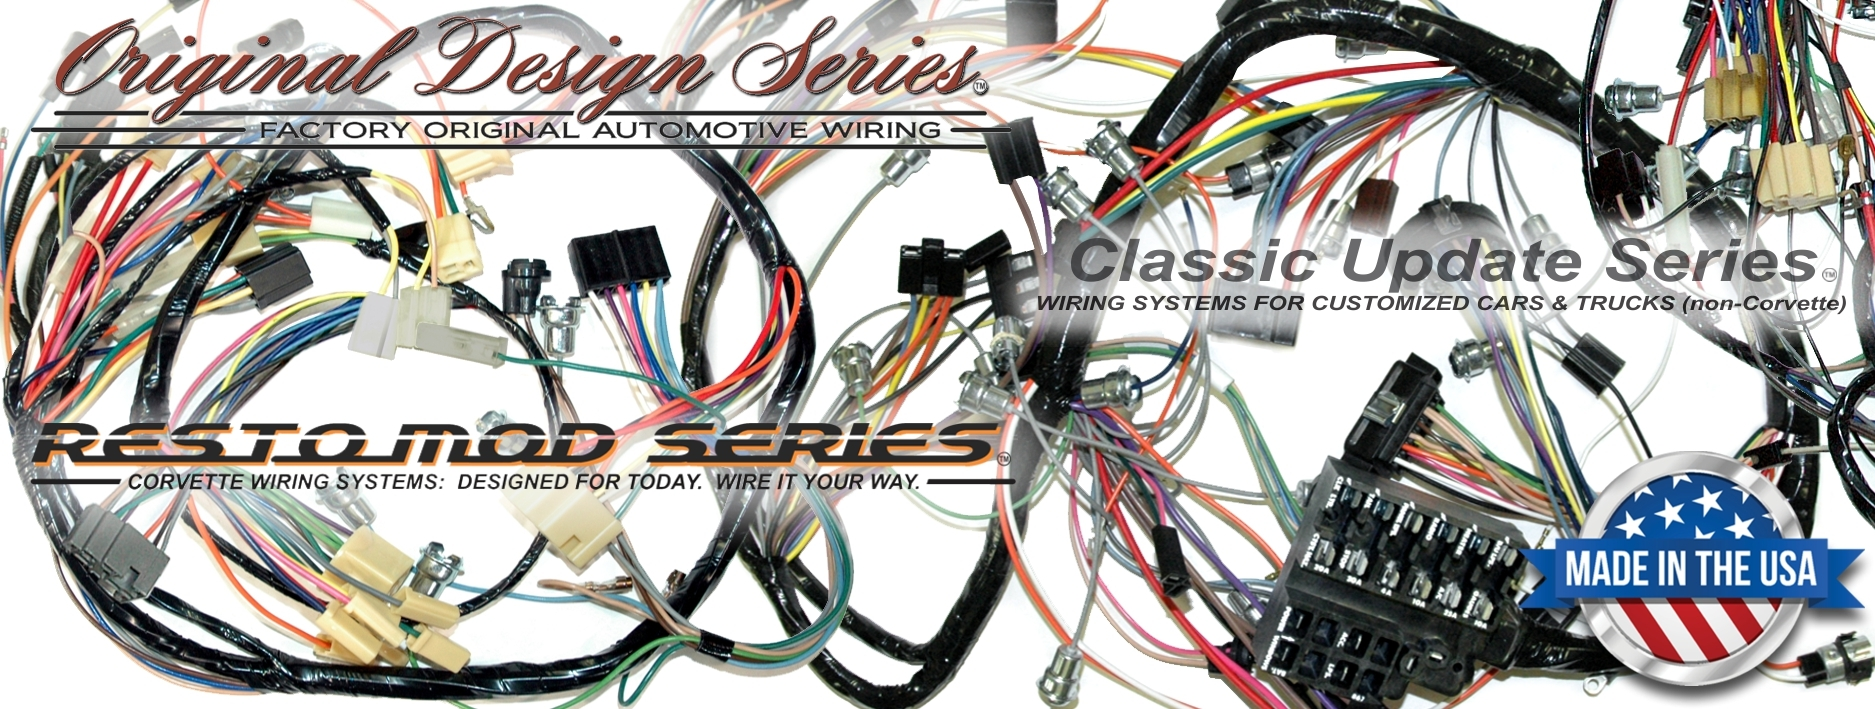 new header wiring_harnesses exact oem reproduction wiring harnesses and restomod wiring c3 corvette engine wiring harness at bayanpartner.co